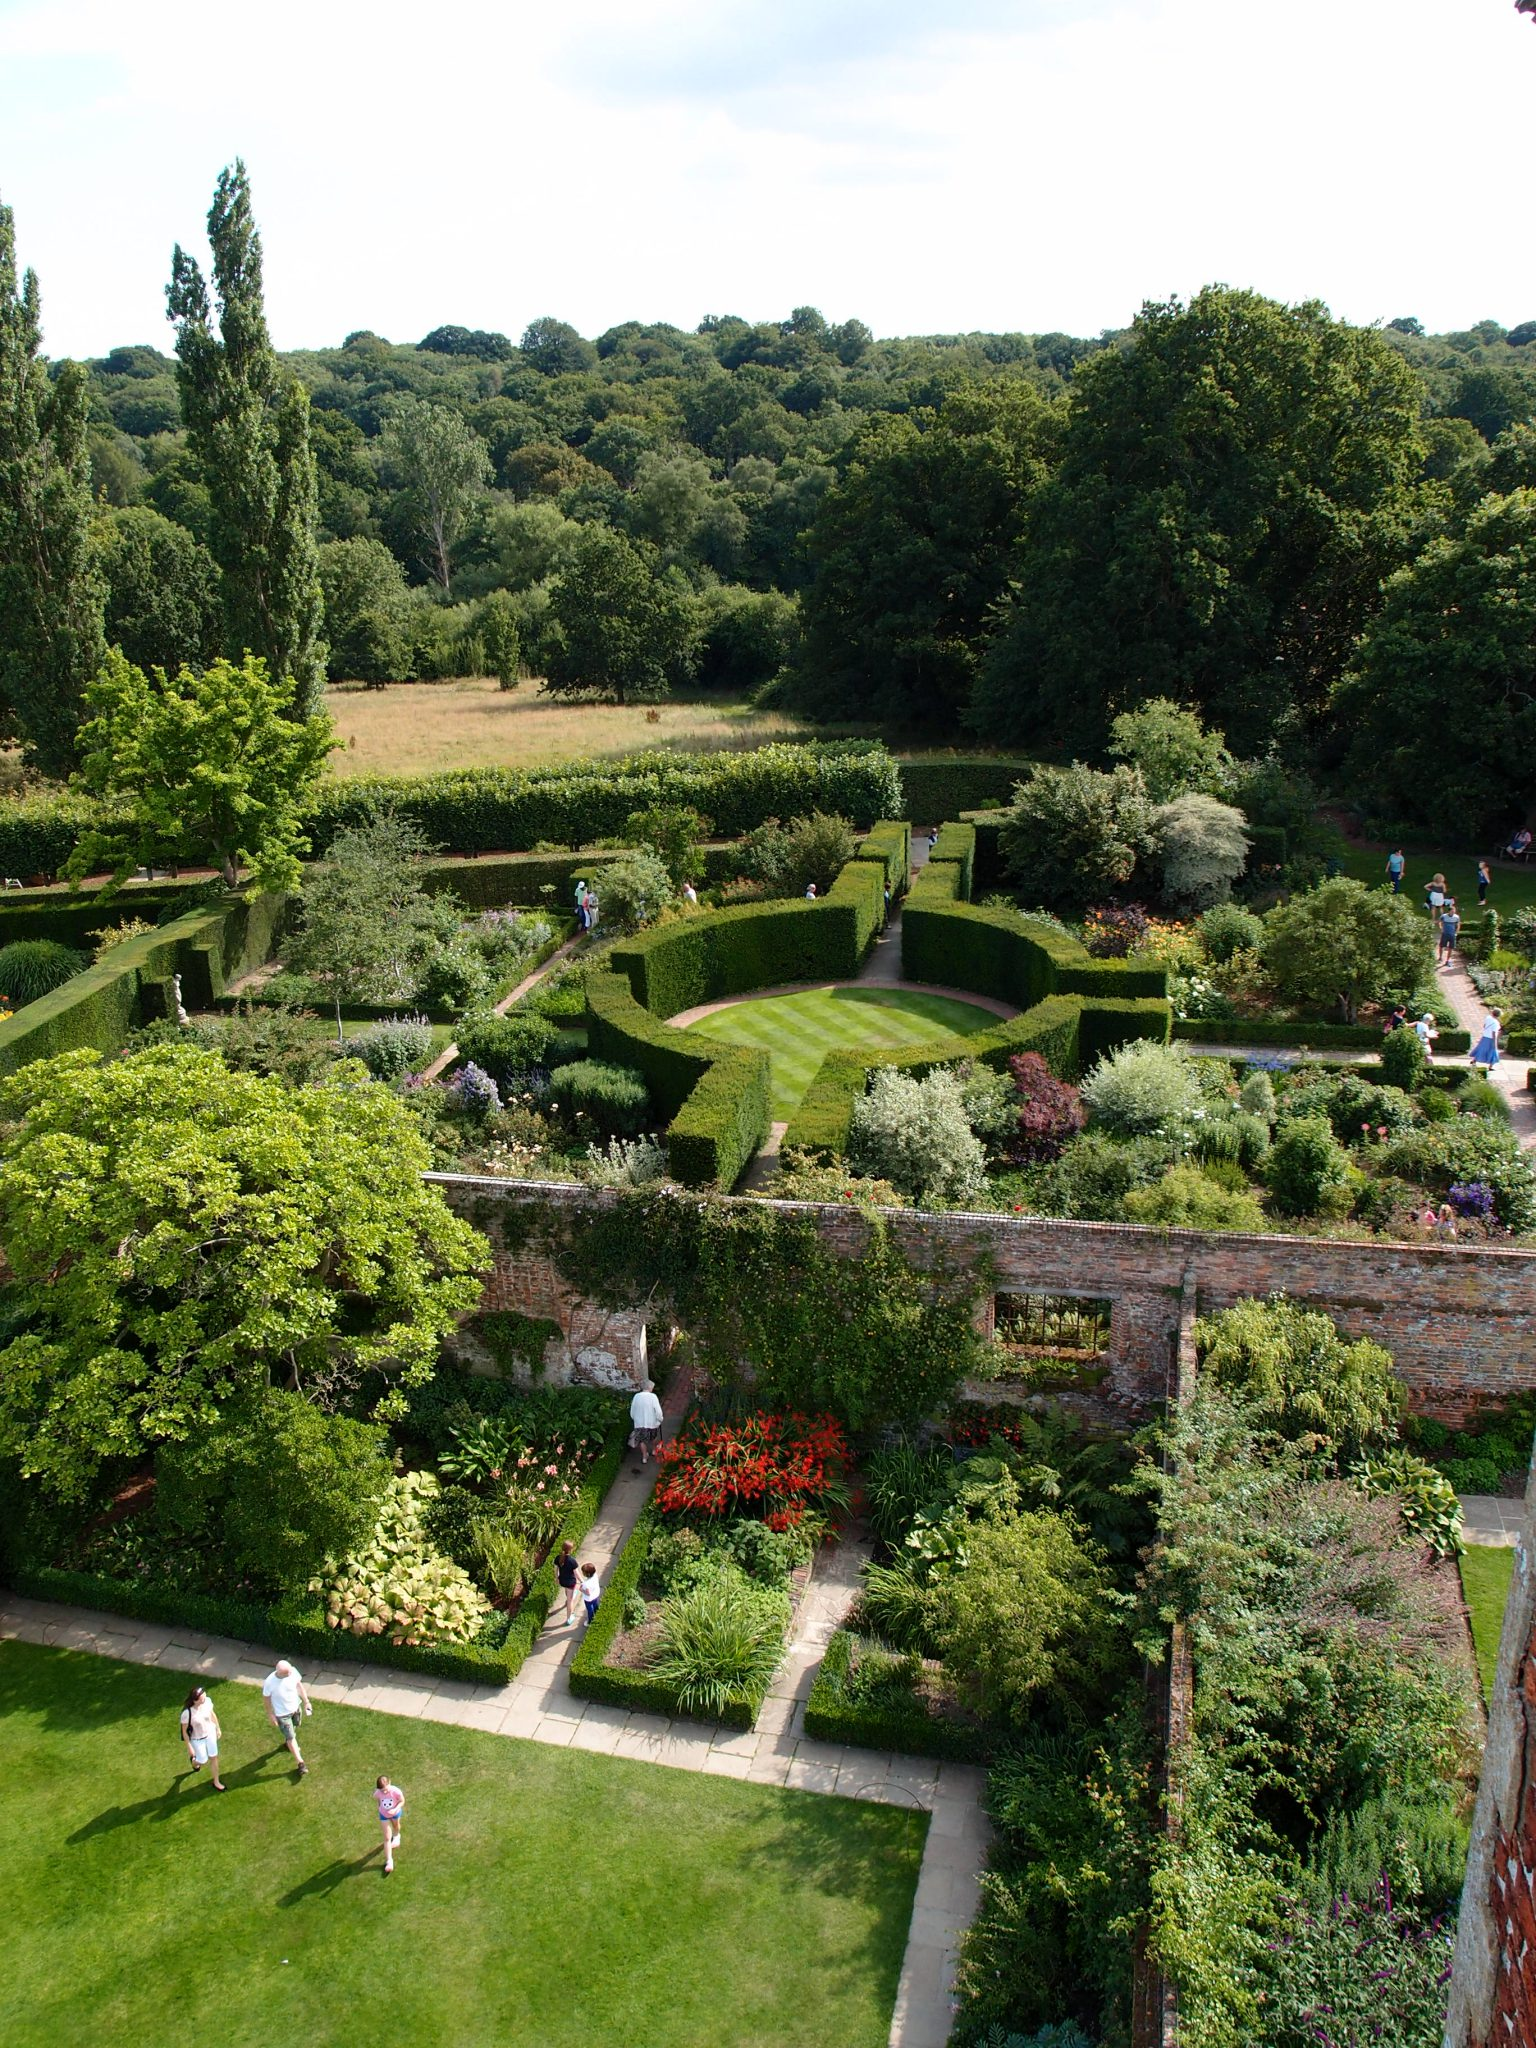 My Tower-top view of the Rose Garden's Rondel, taken late in the afternoon, after the crowds had gone away.